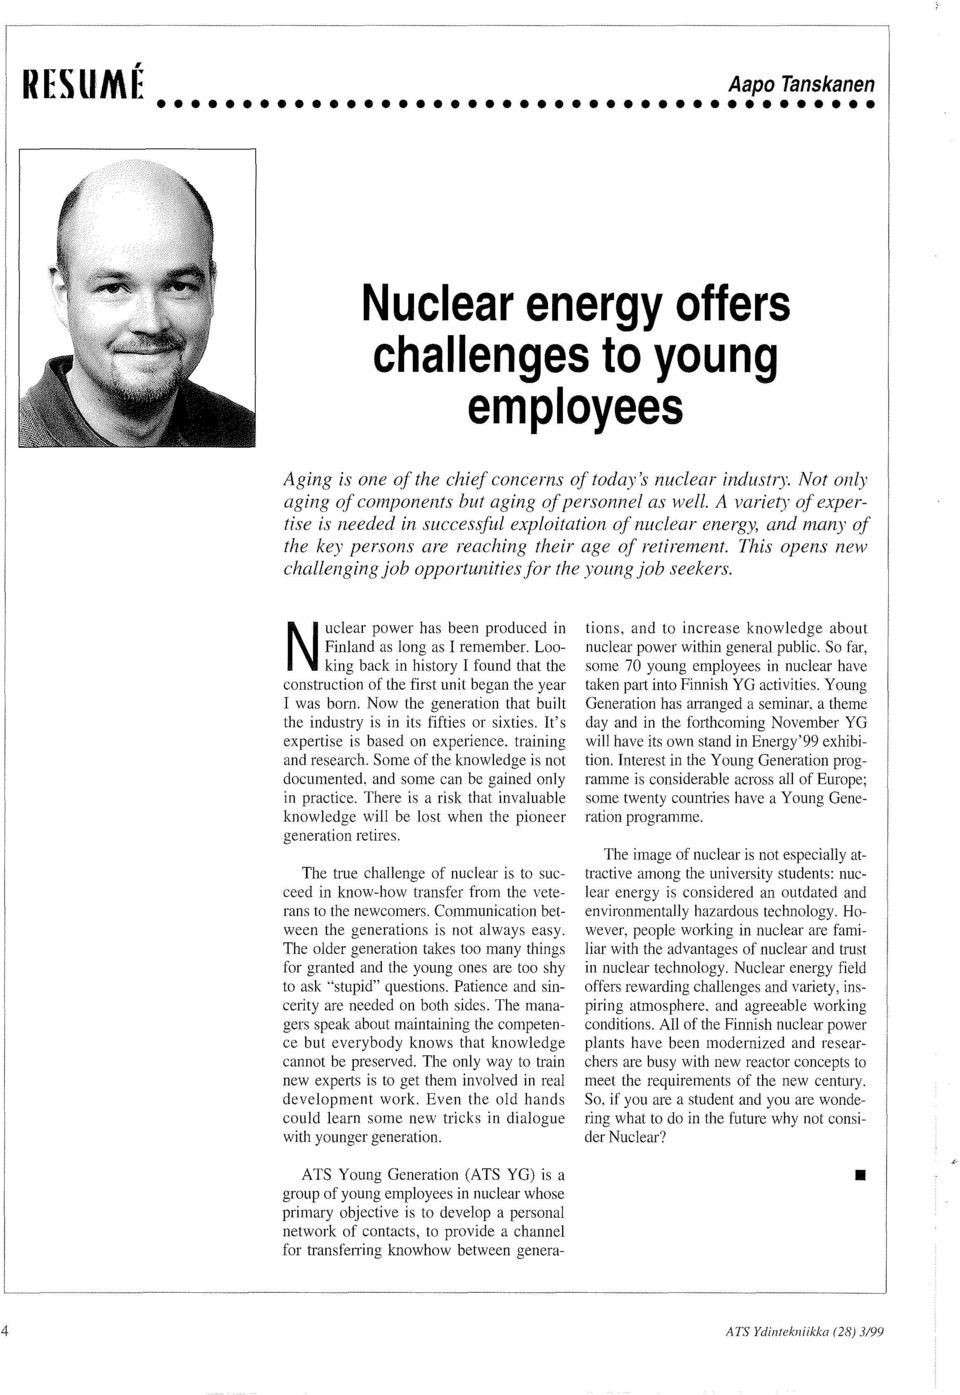 A variety of expertise is needed in successful exploitation of nuclear energy, and many of the key persons are reaching their age of retire1nent.